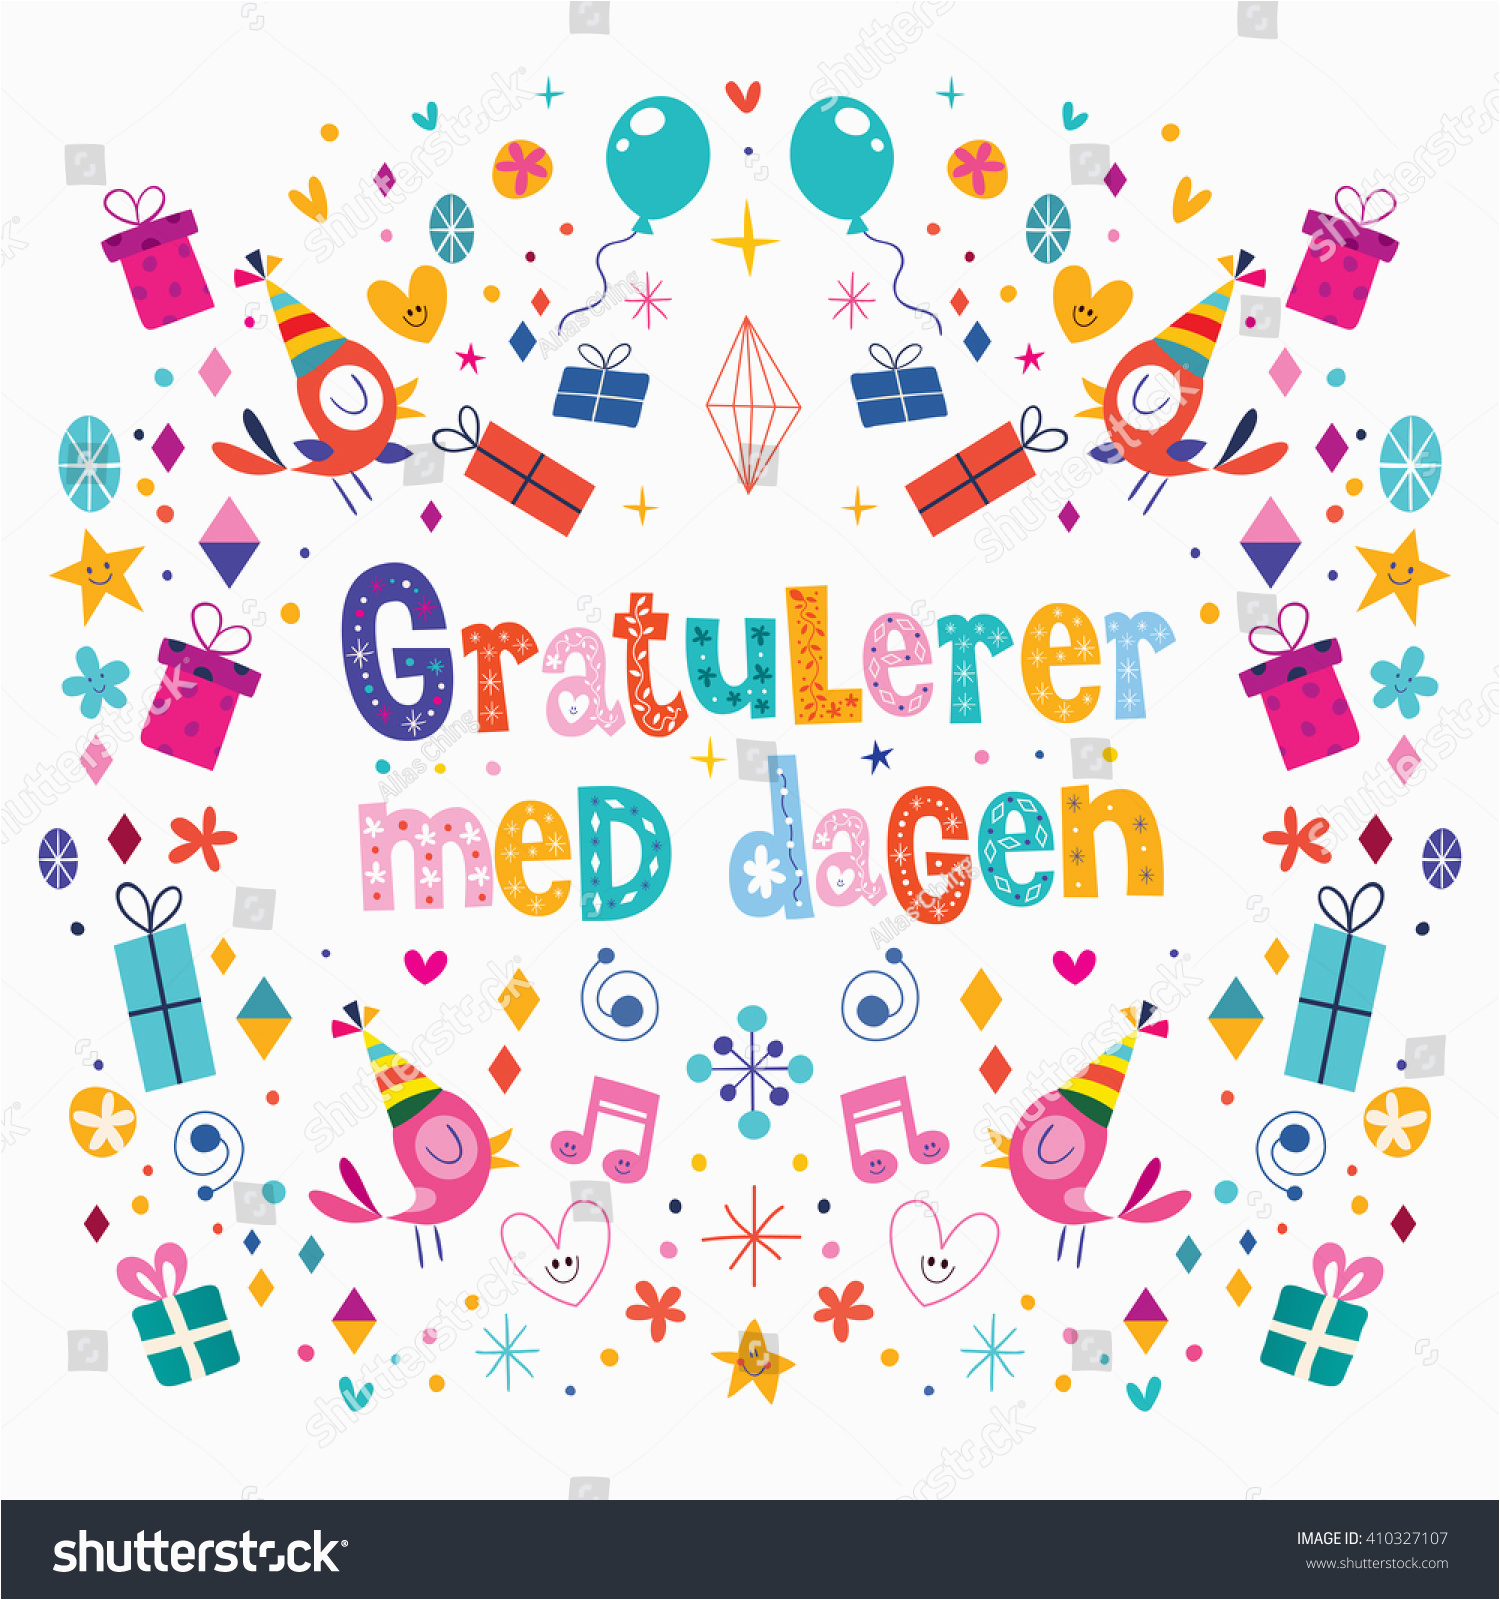 gratulerer med dagen happy birthday norwegian 410327107